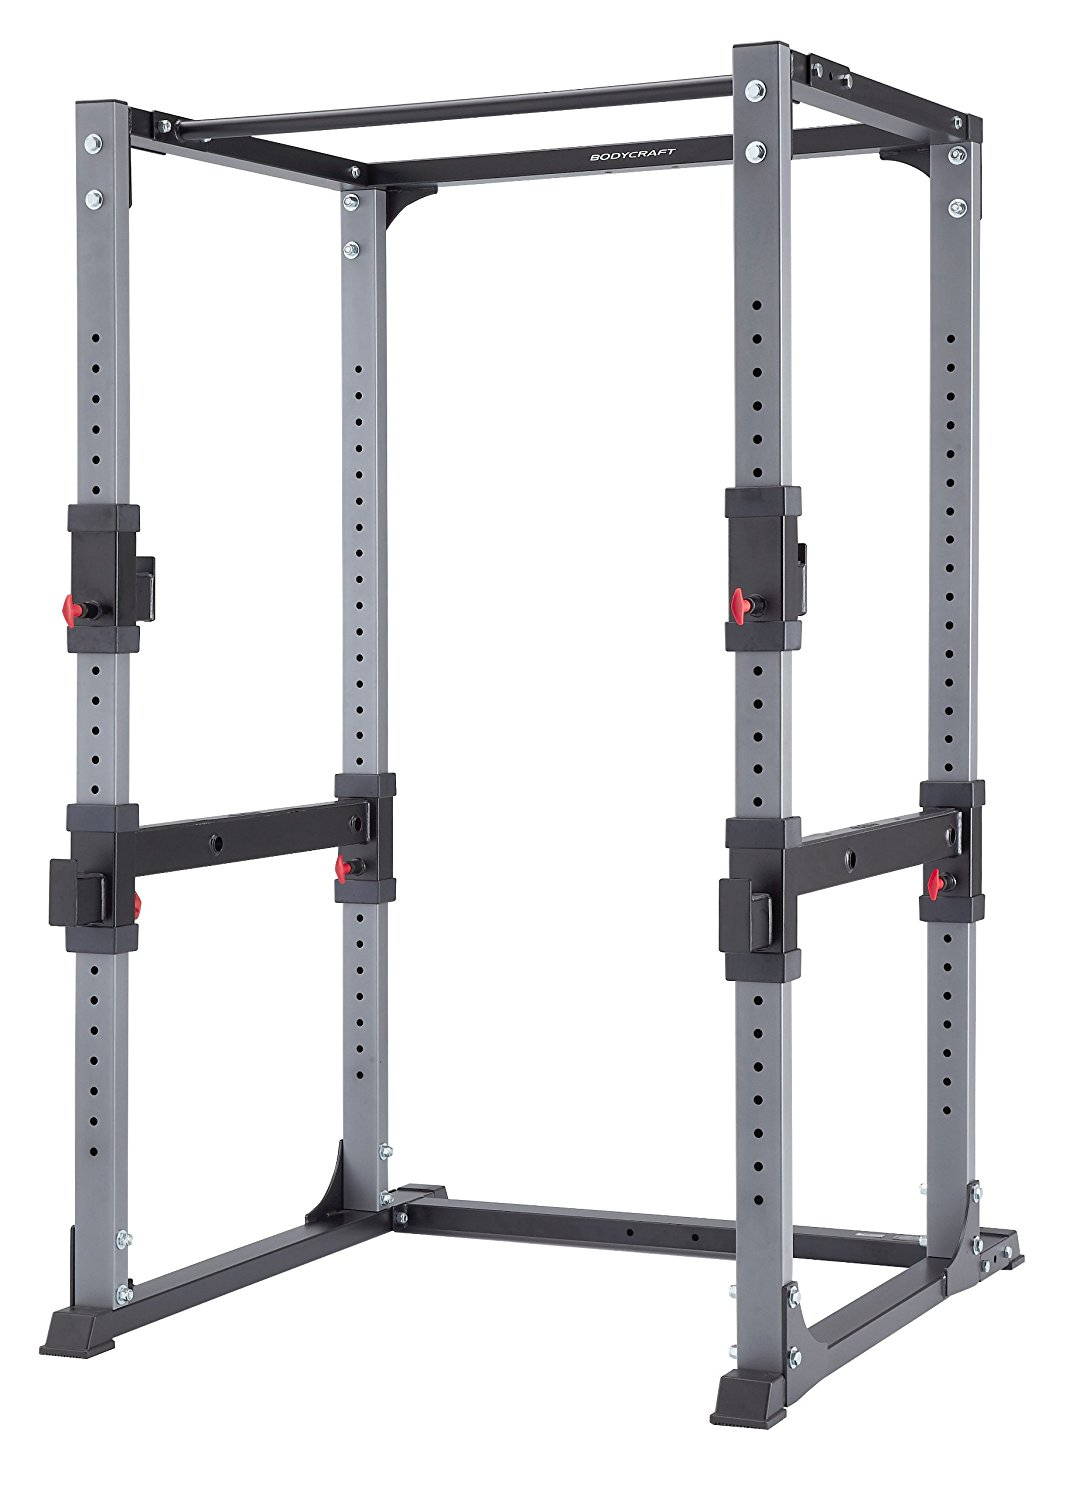 Squat Bars for Sale | Squat Rack for Sale | Weight Bench and Squat Rack